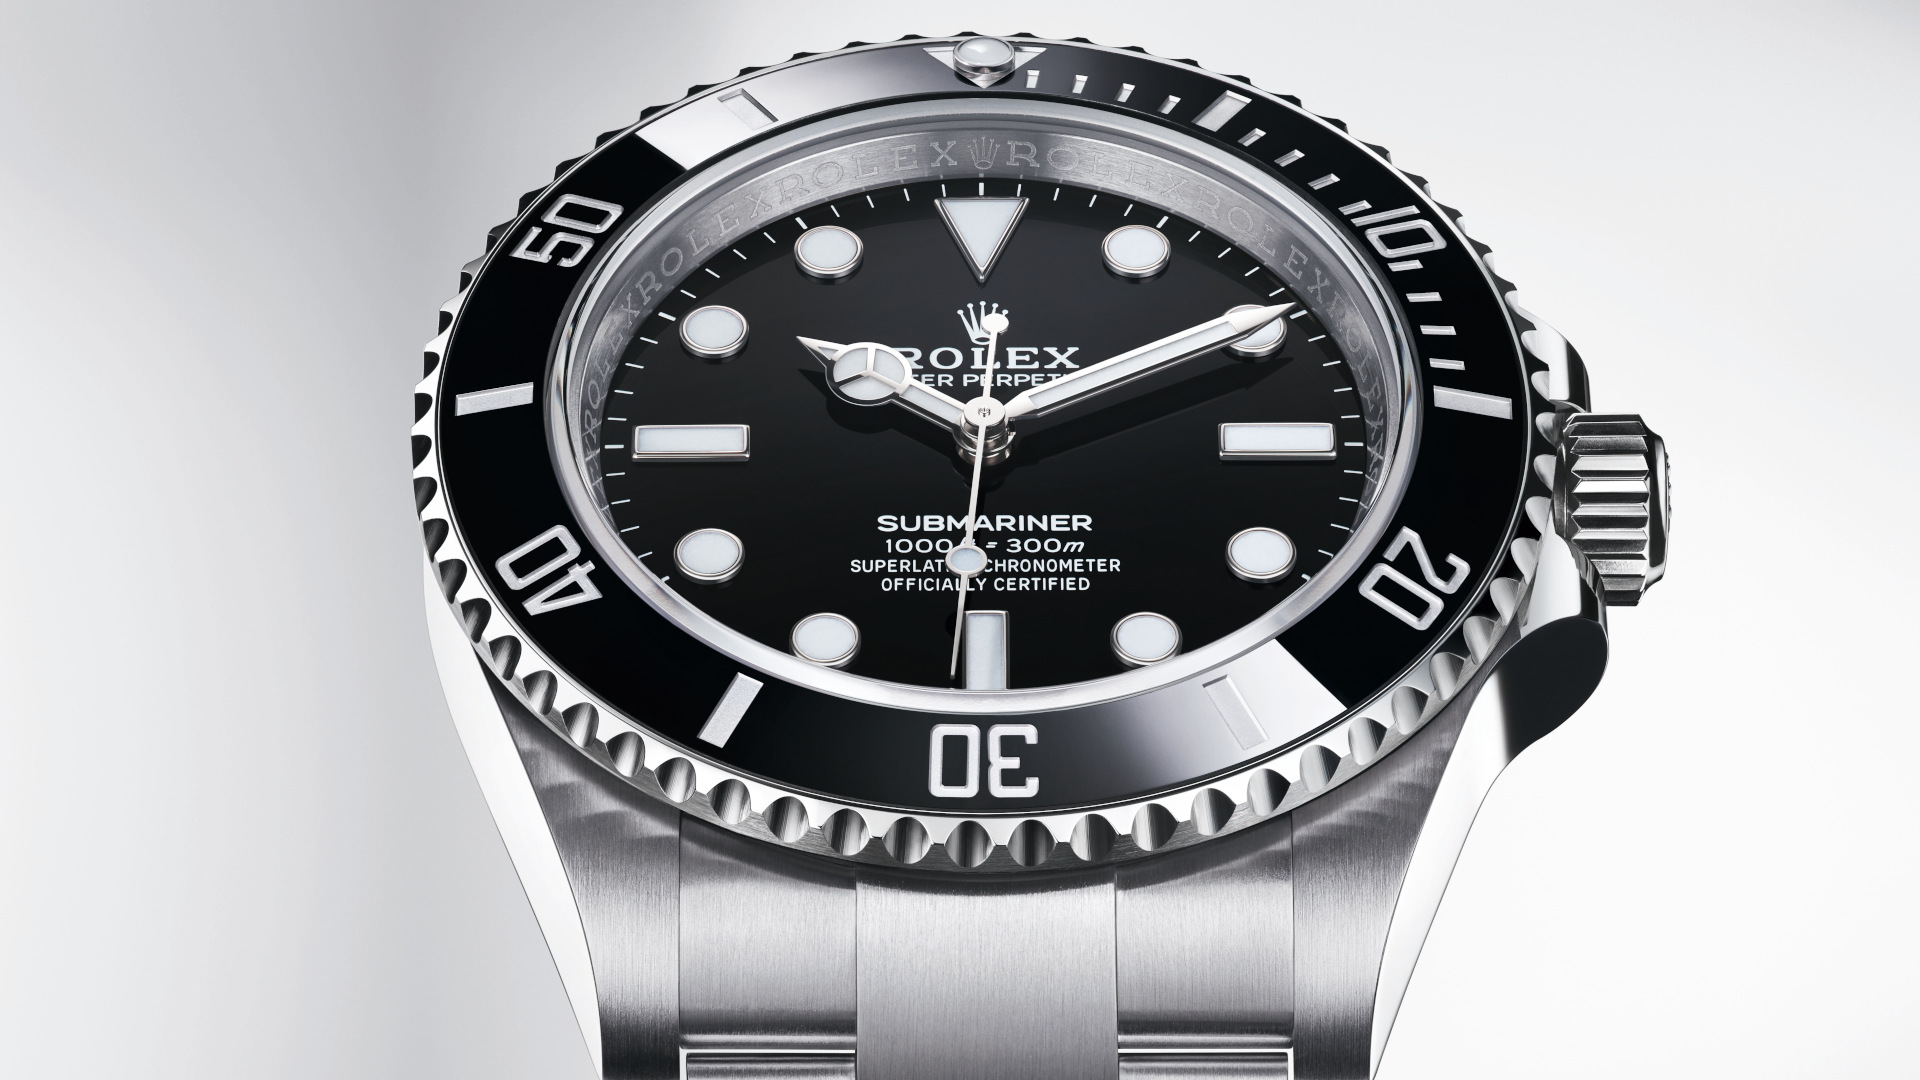 The new Rolex Submariner is now in 41mm and the watch community can't stop talking about it